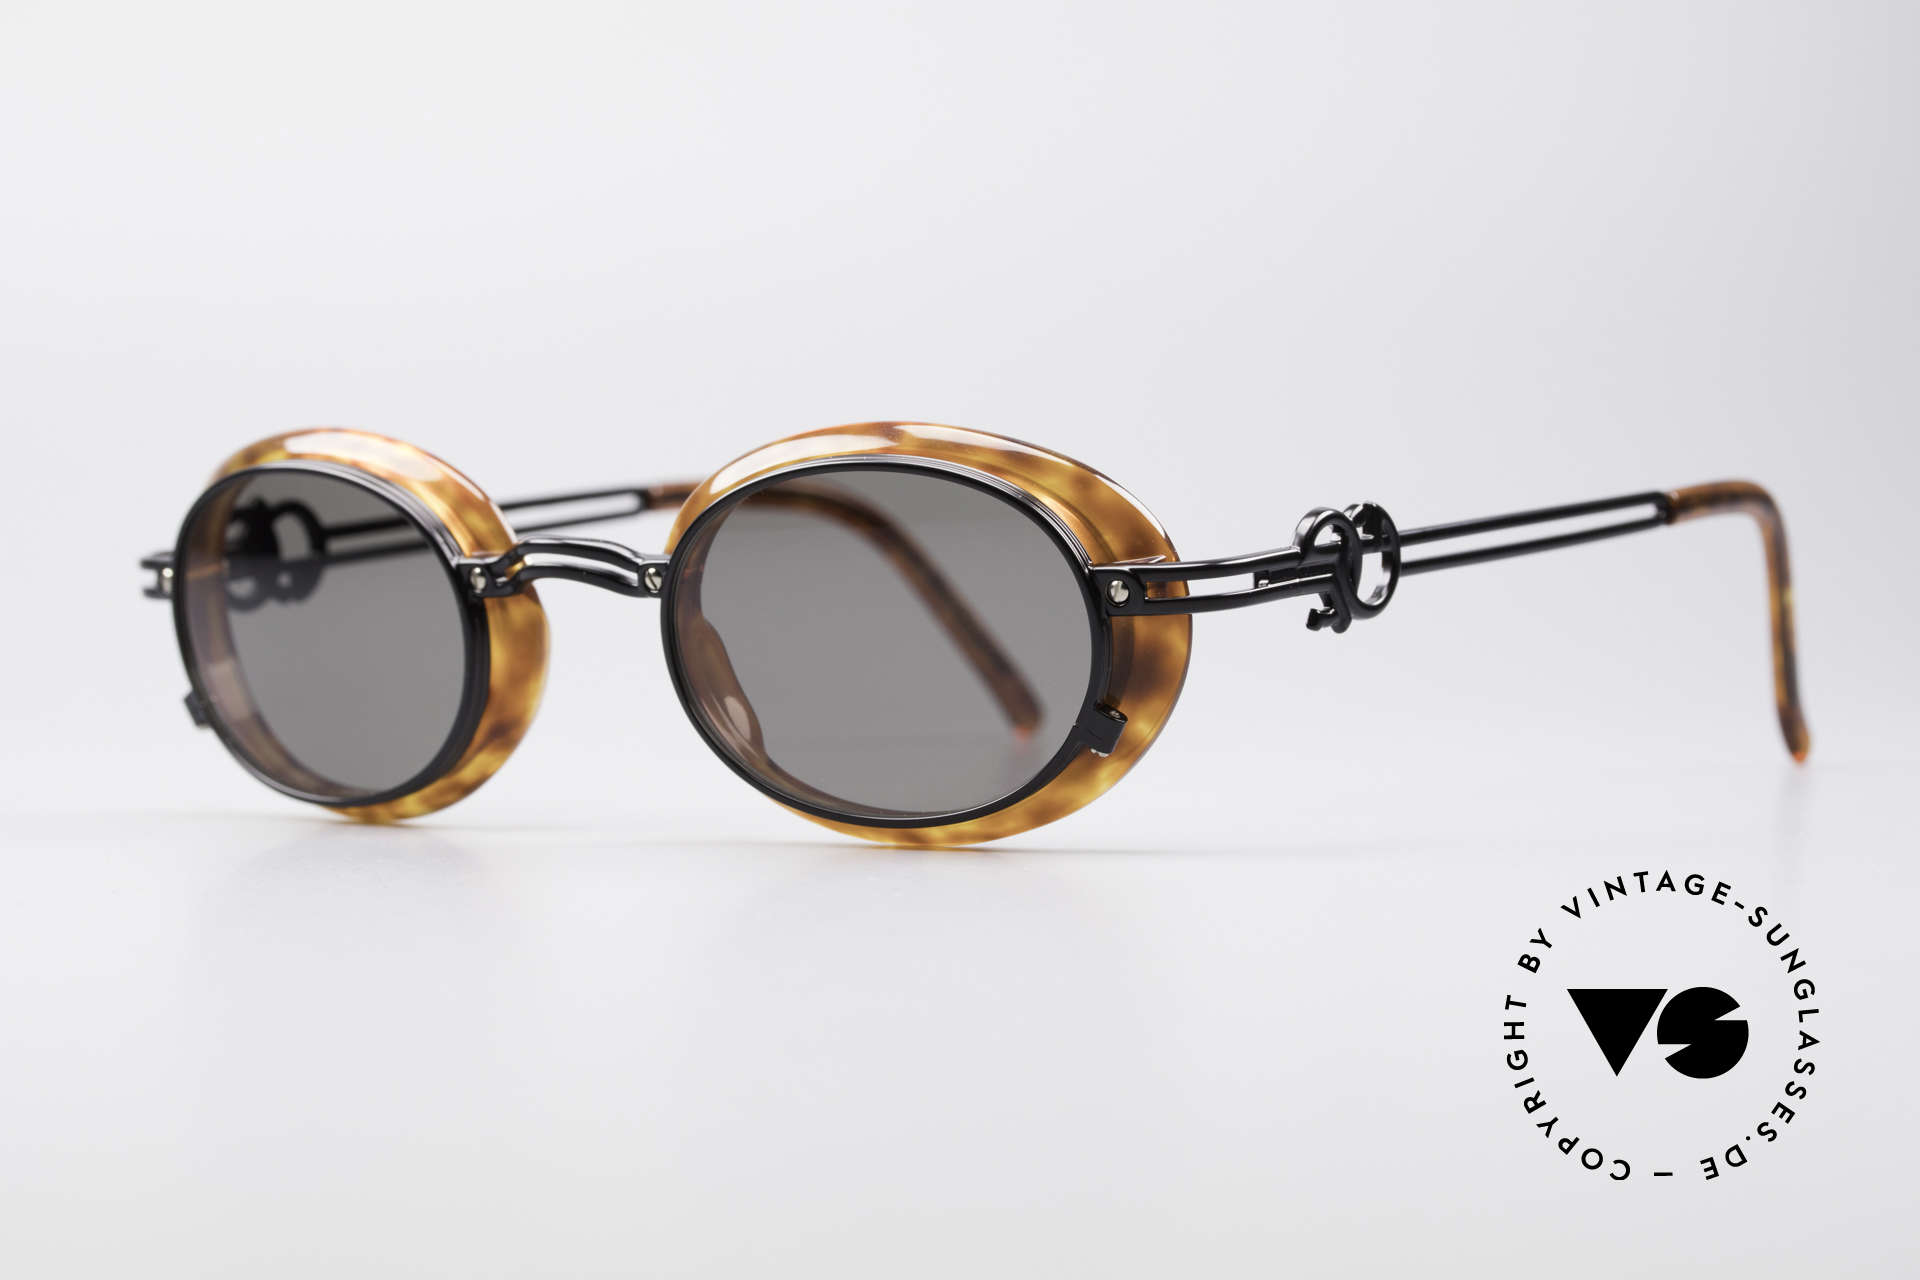 Jean Paul Gaultier 58-5201 Rare 90's Steampunk Shades, true rarity in high-end quality (100% UV protect.), Made for Men and Women